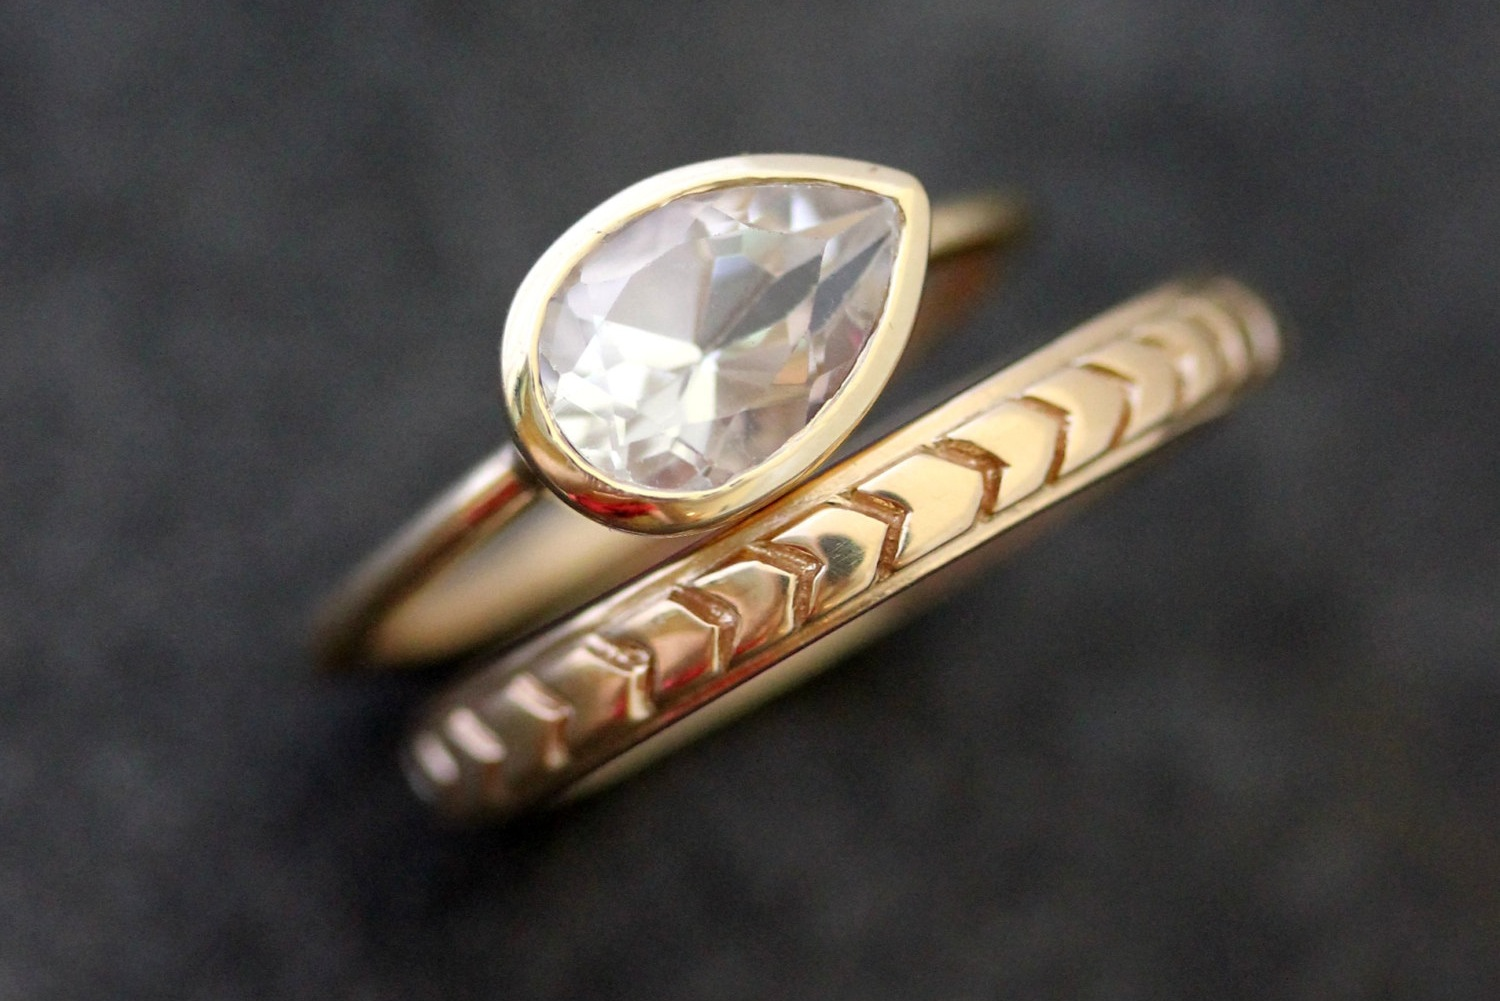 recycled gold chevron wedding band and alternative